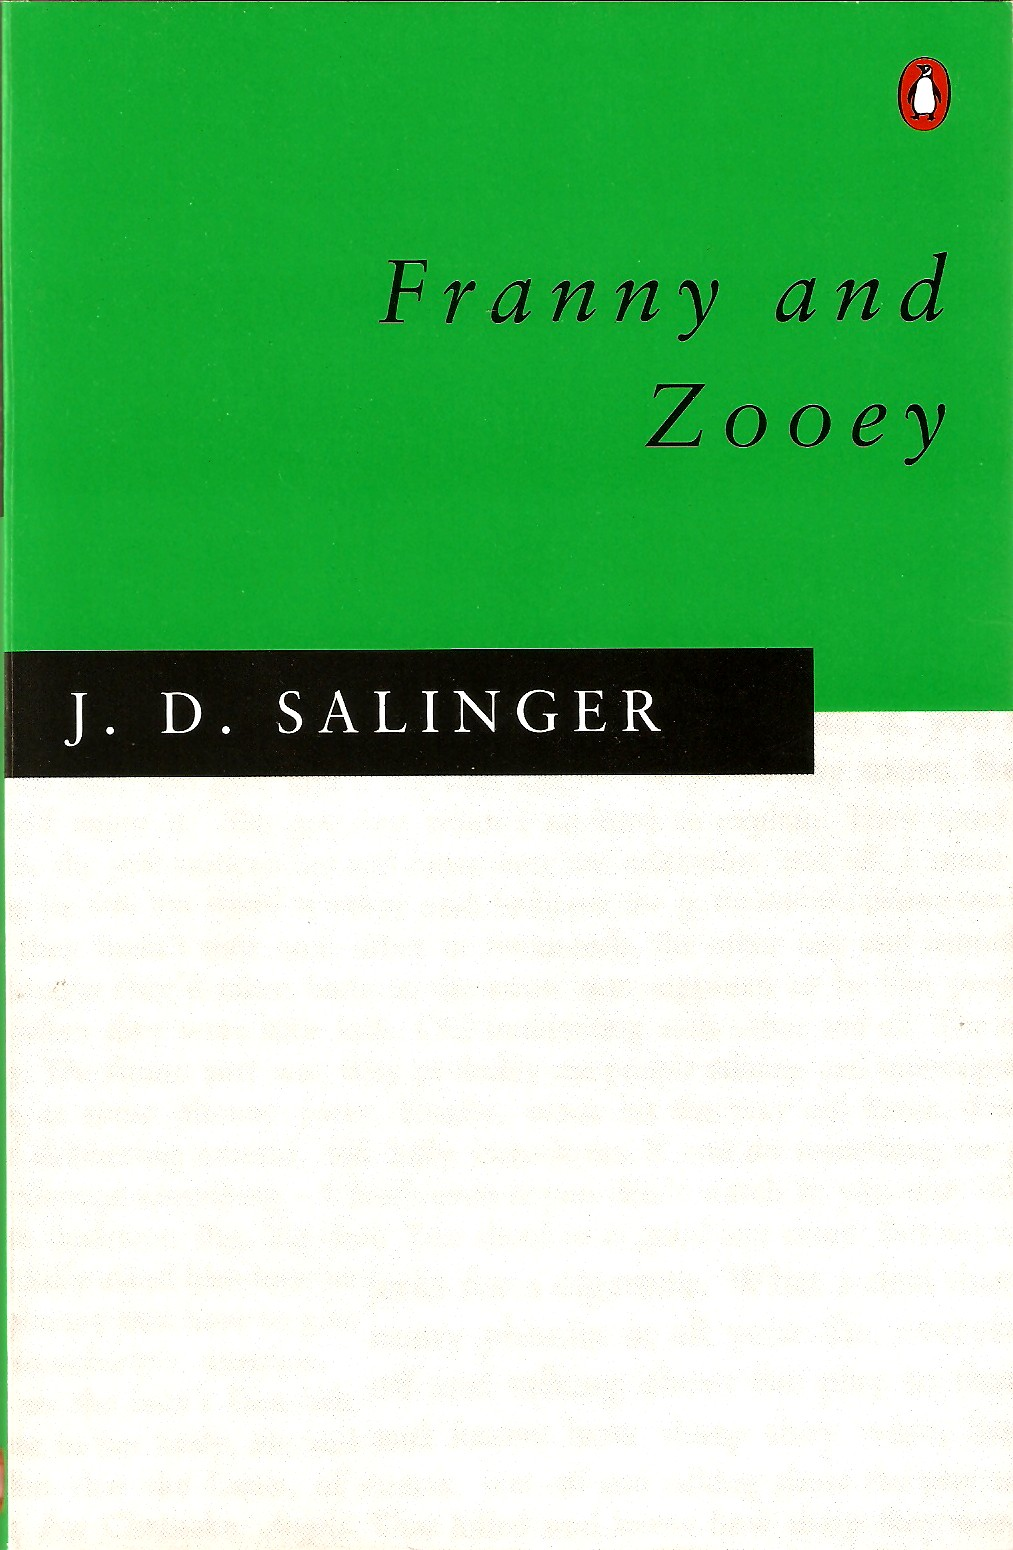 franny and zooey essay ideas This 1999 word essay is about j d salinger, fiction, literature, american literature, the catcher in the rye, franny and zooey, glass family read the full essay now.